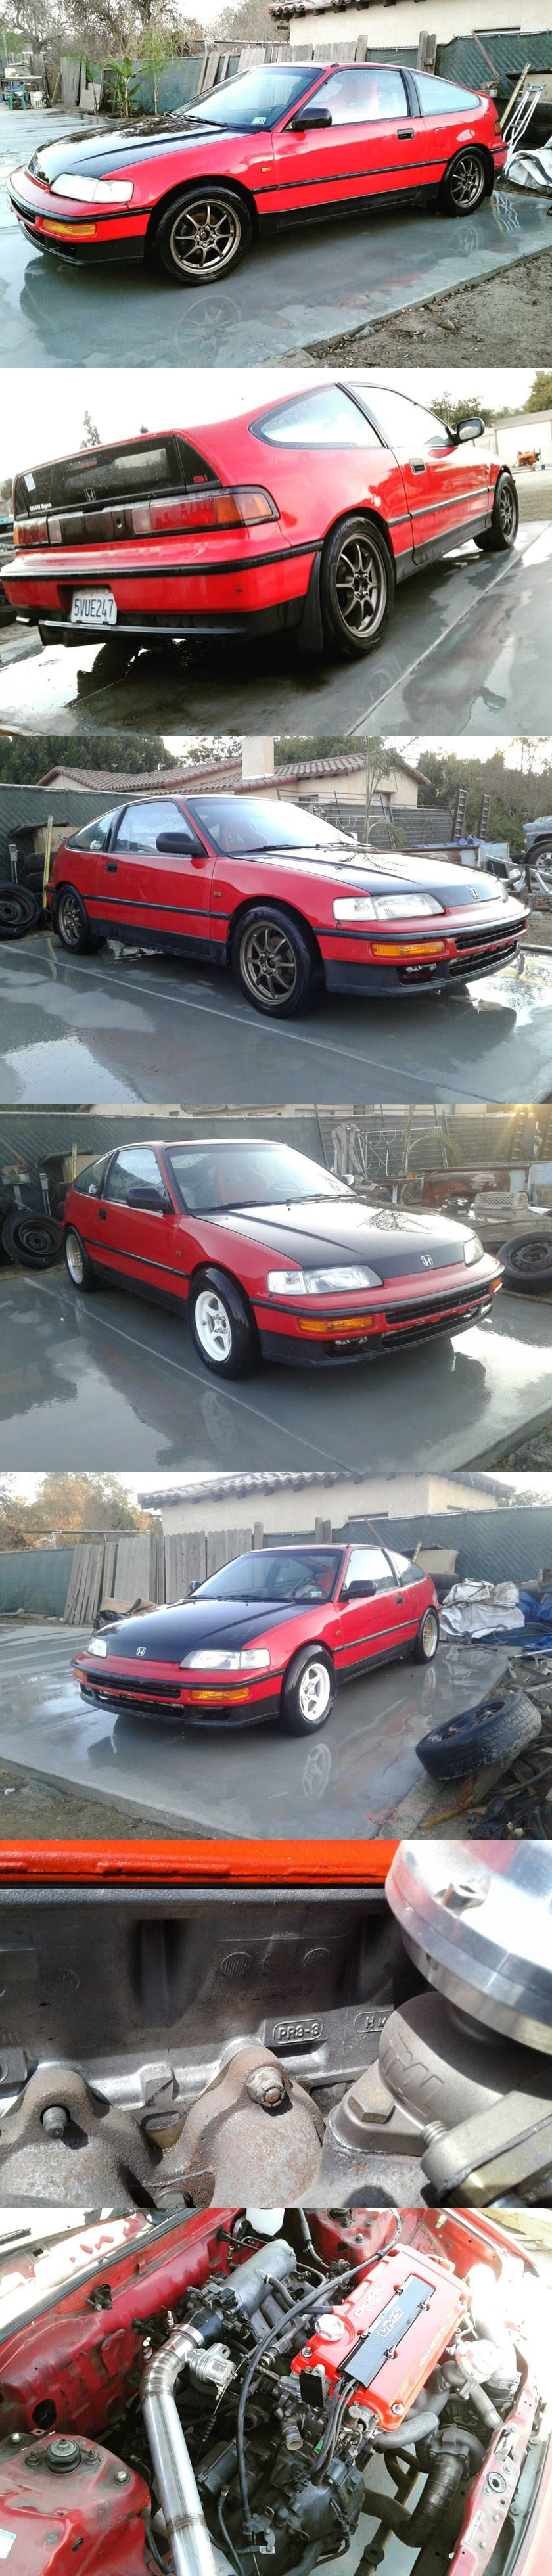 Weekly Craigslist Hidden Treasure: 1990 Honda CRX Si Turbo  How does